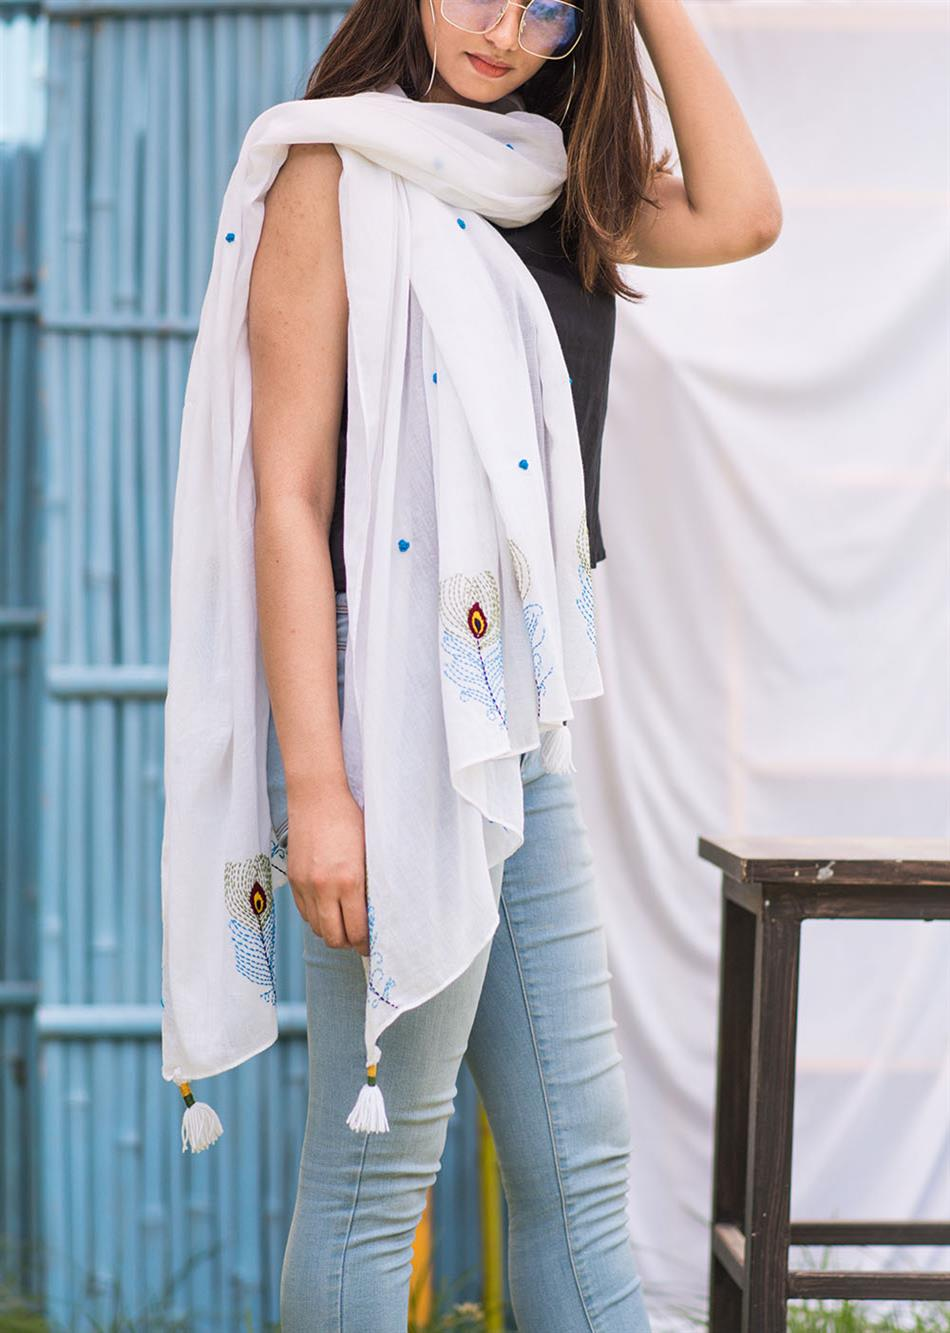 Balletic mood - White (Hand embroidered scarf)